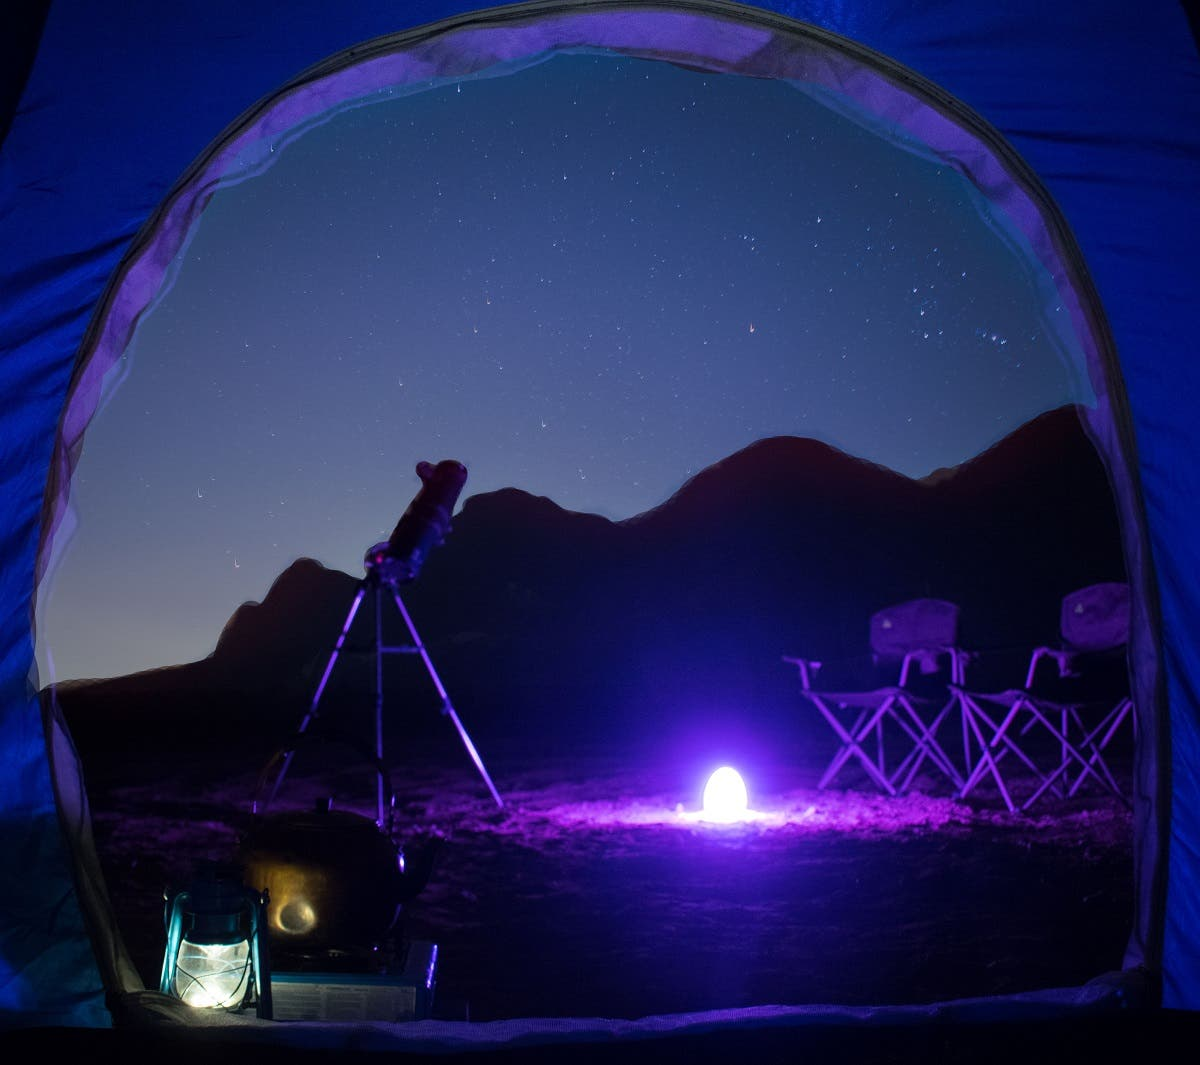 The on-the-move activity by Mleiha is designed for astronomy enthusiasts who want to observe the night sky wonders in their comfort zone. (Courtesy: Shurooq)